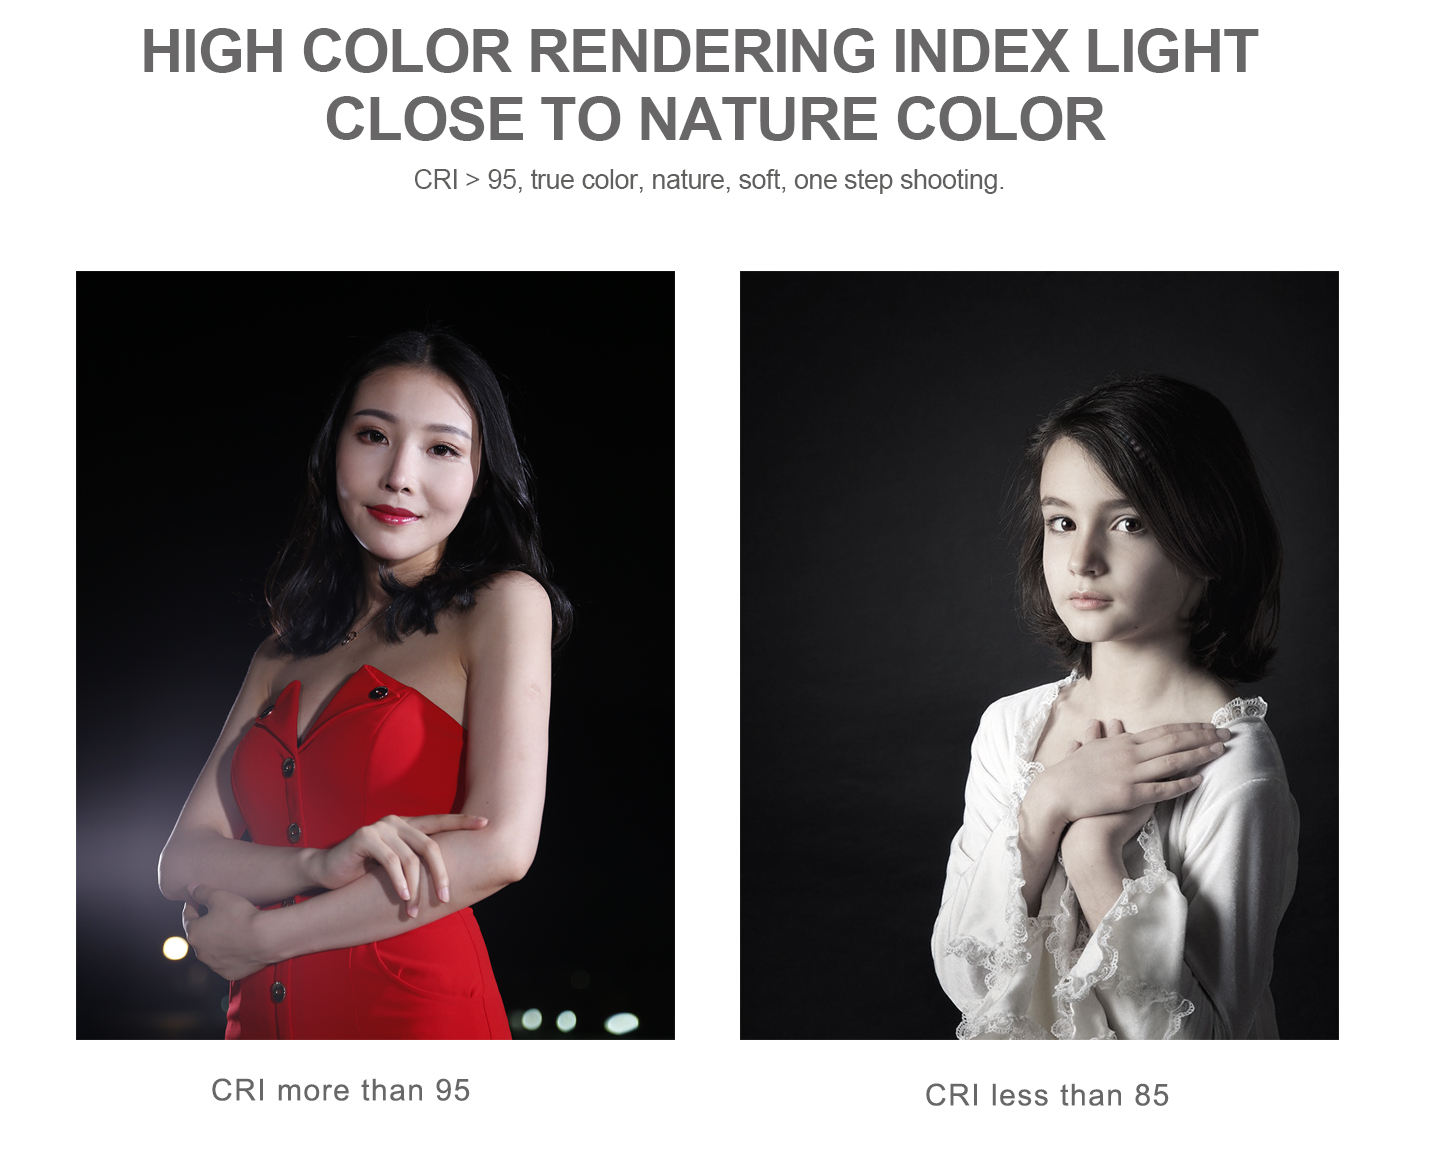 HIGH COLOR RENDERING INDEX LIGHT CLOSE TO NATURE COLOR